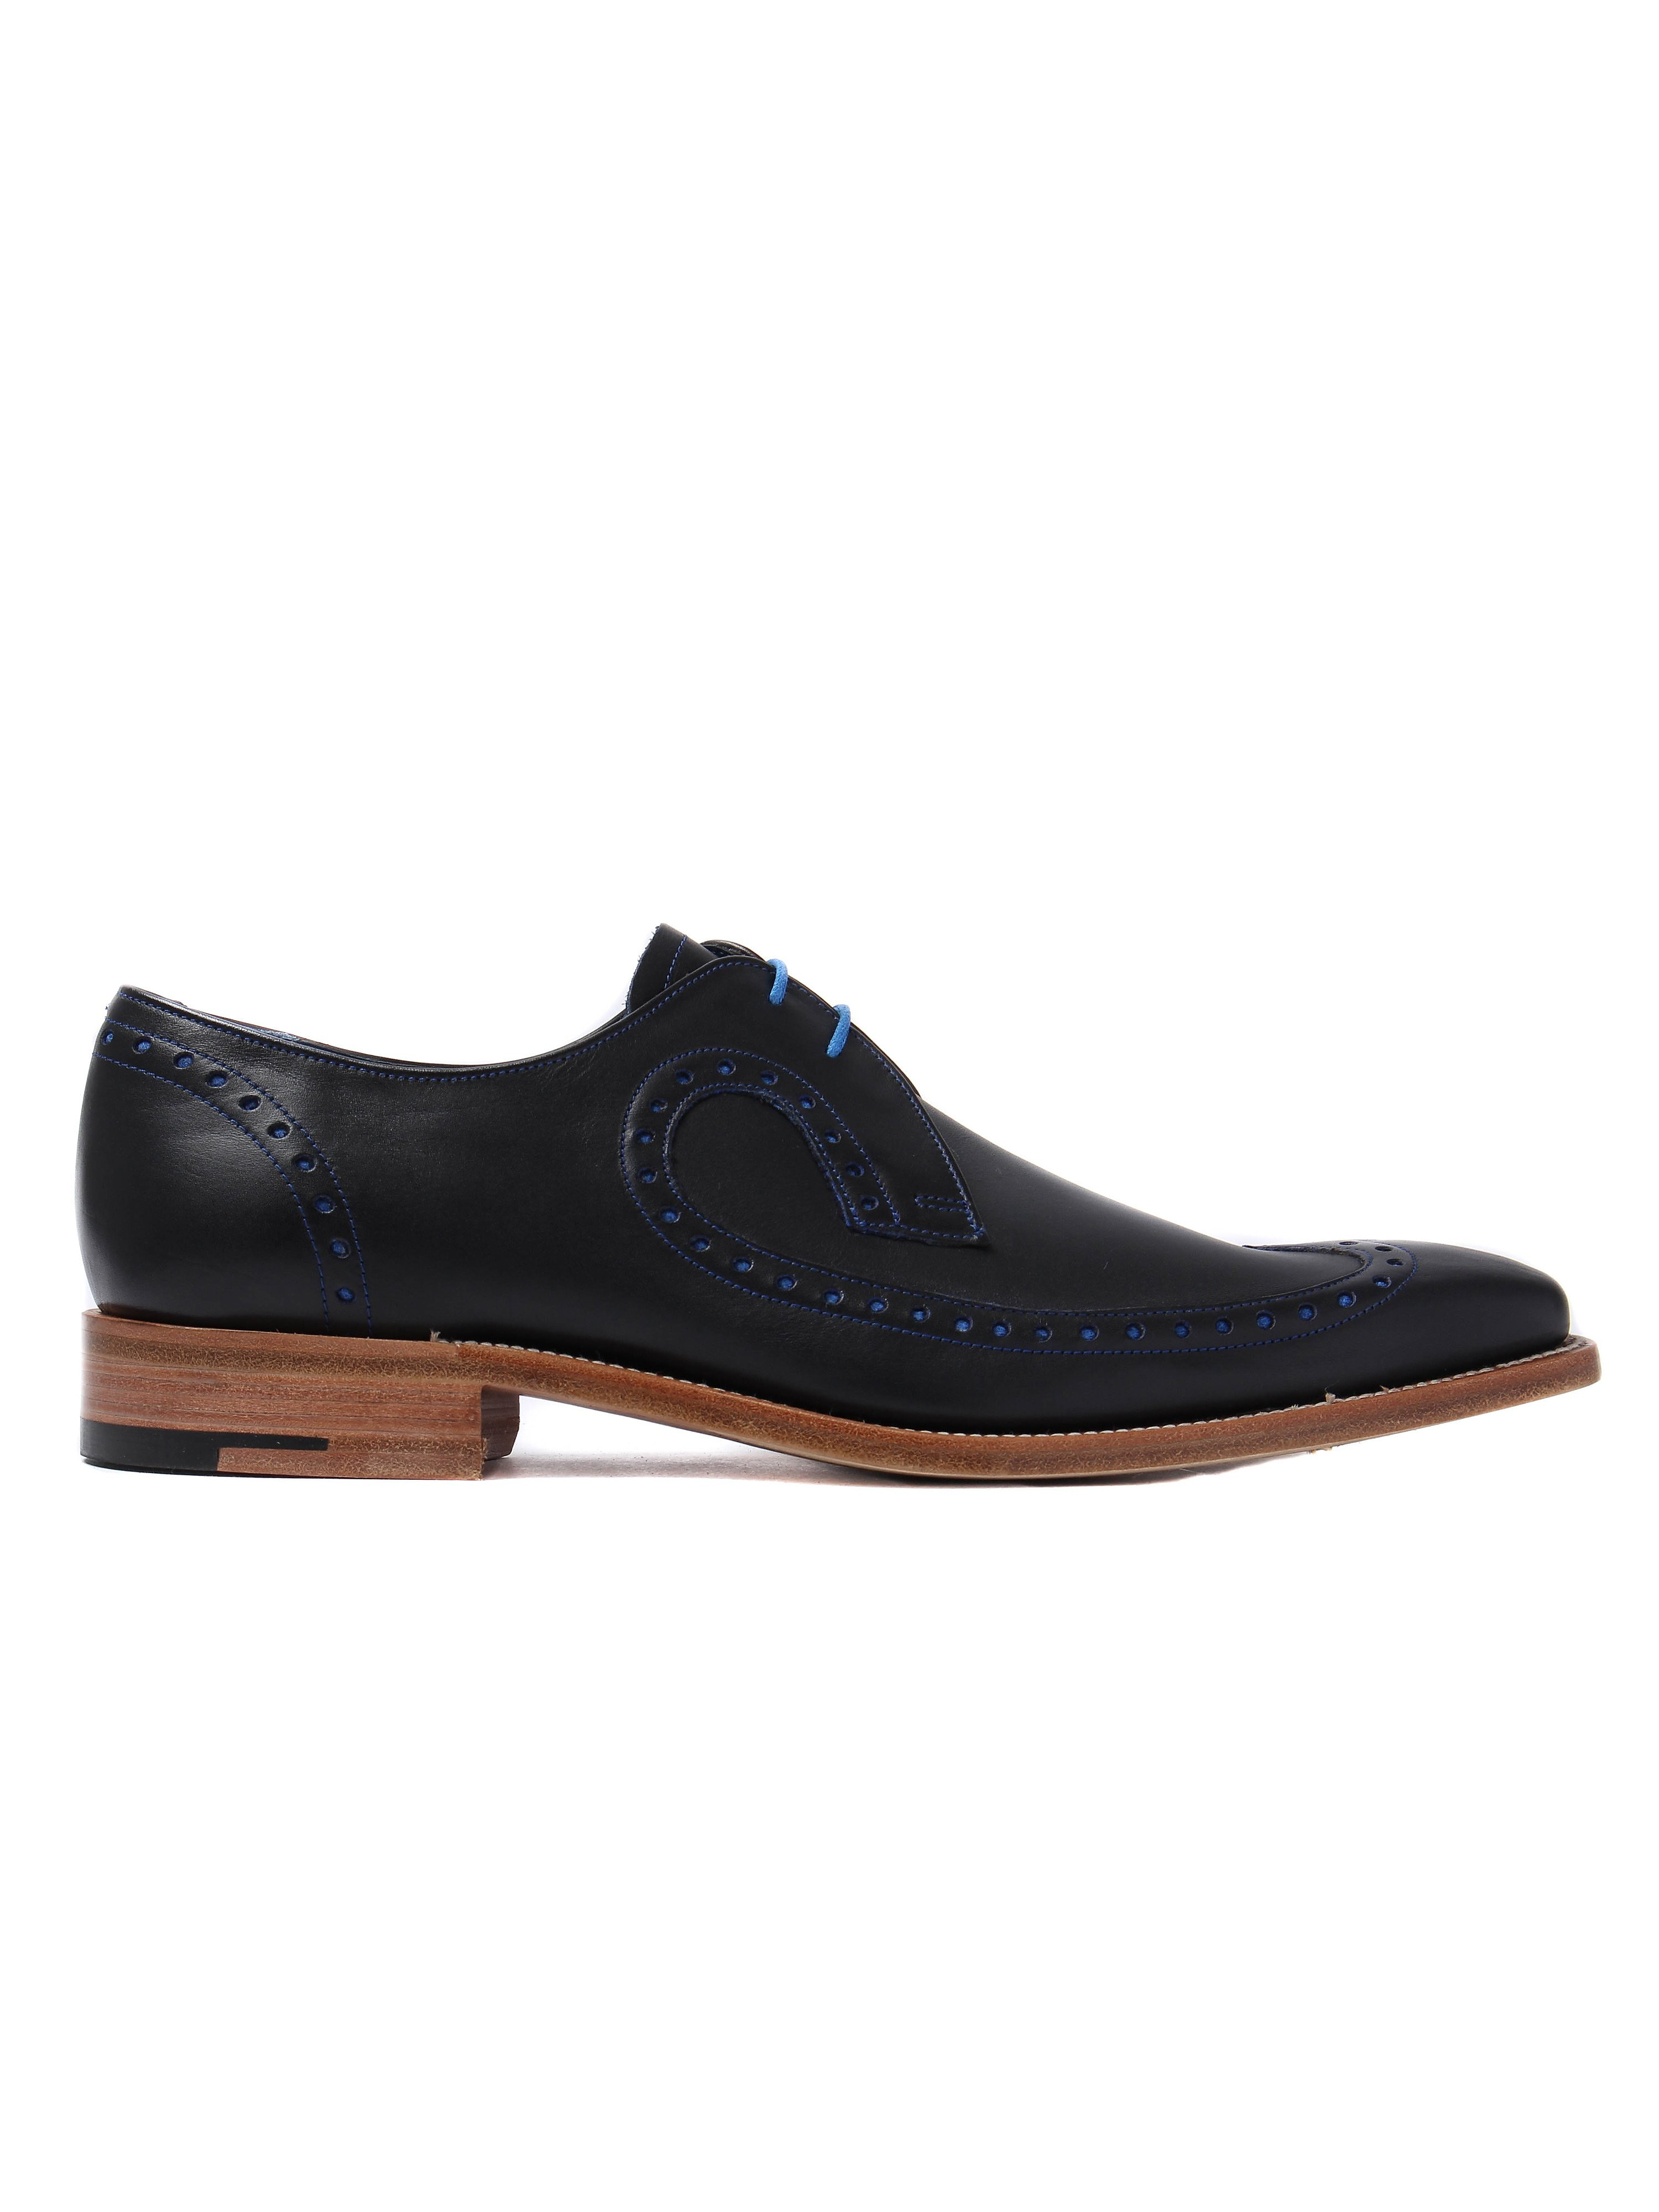 Barker Men's Woody Leather Long-Wing Brogues - Navy